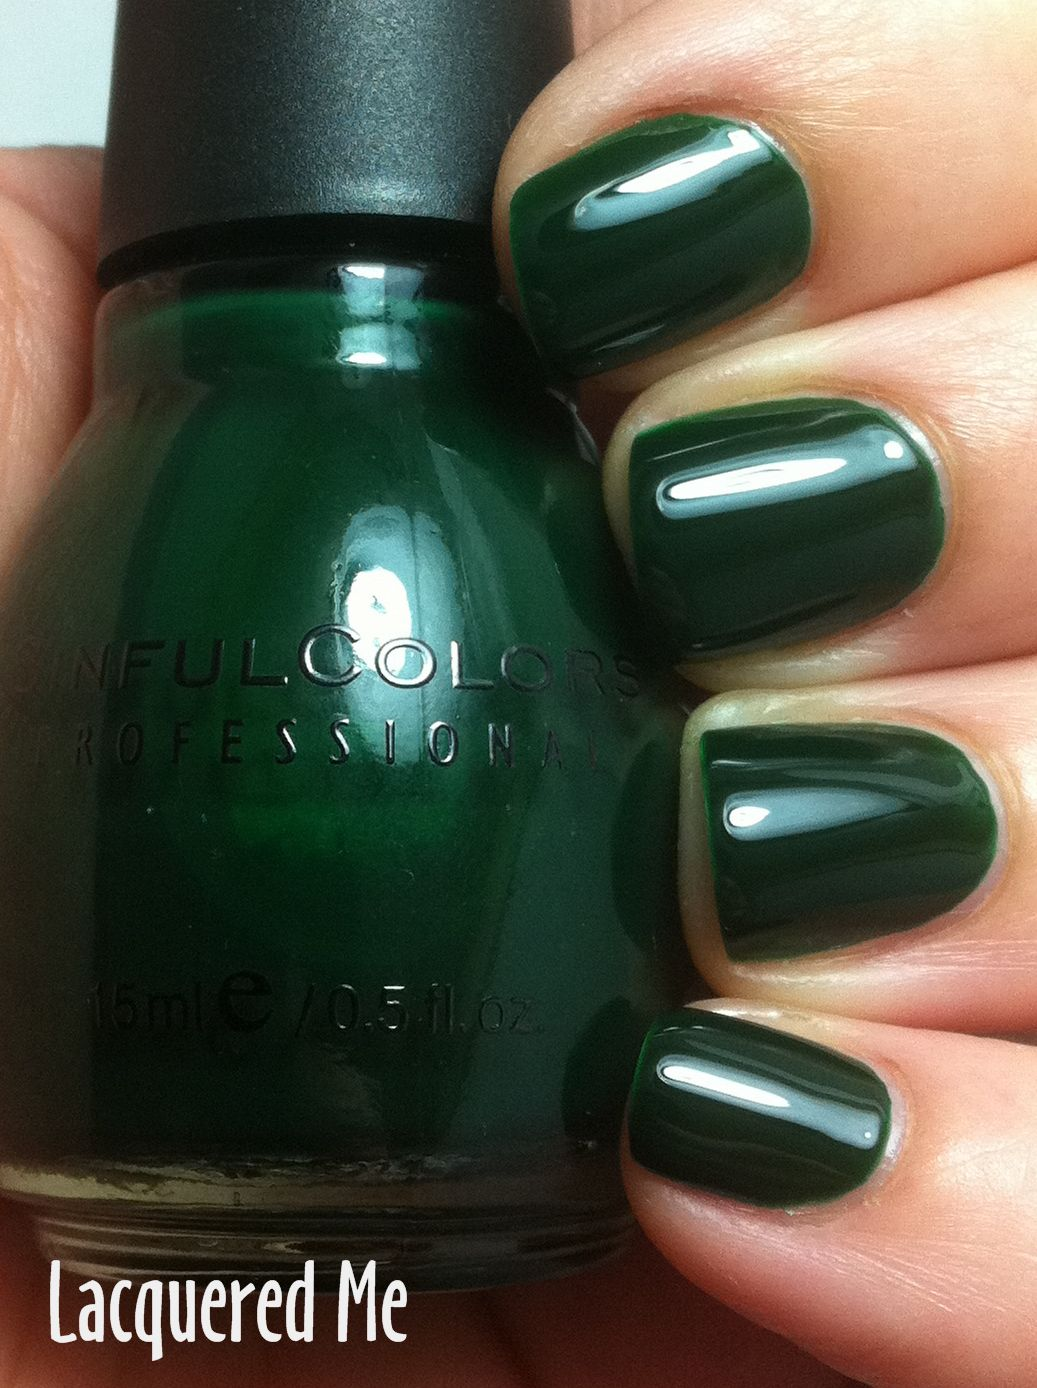 Sinful Colors Last Chance This Is A Jelly Polish With A Smooth Formula And A Beautiful Dark Dark Green Nail Polish Green Nail Polish Sinful Colors Nail Polish